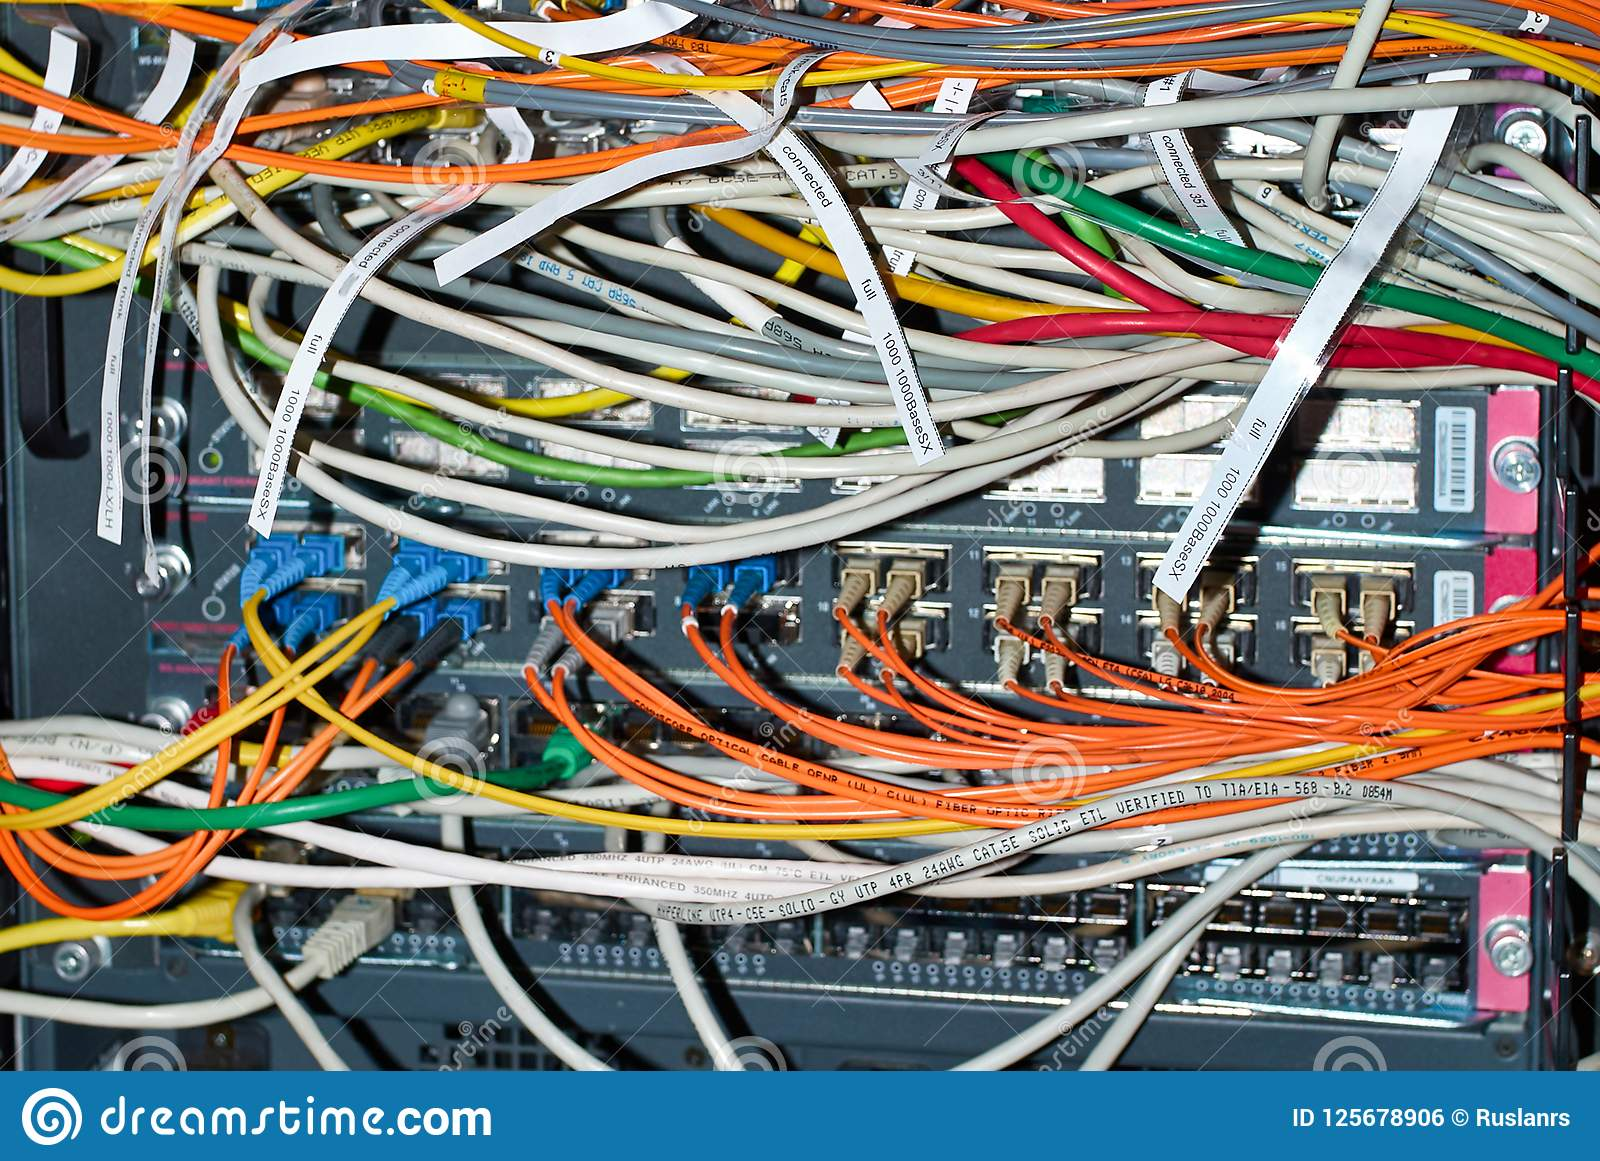 Network Switch Wiring Diagrams Source A Cable With Optical And Ethernet Connected Wires Stock Photo Light